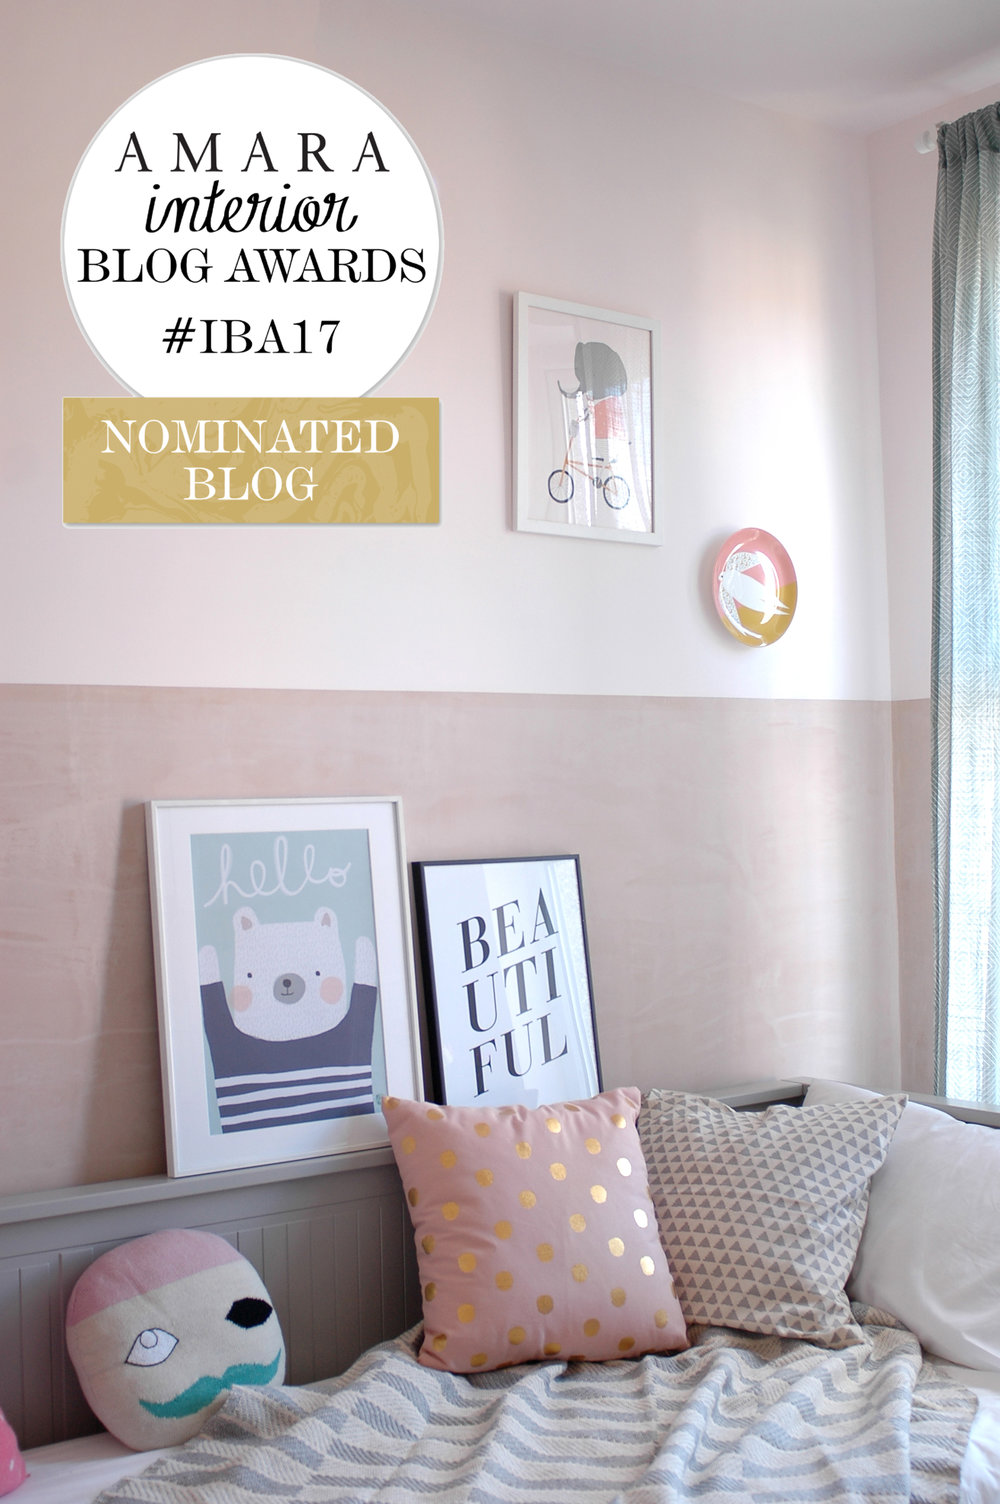 Please vote! Interior Blog Awards